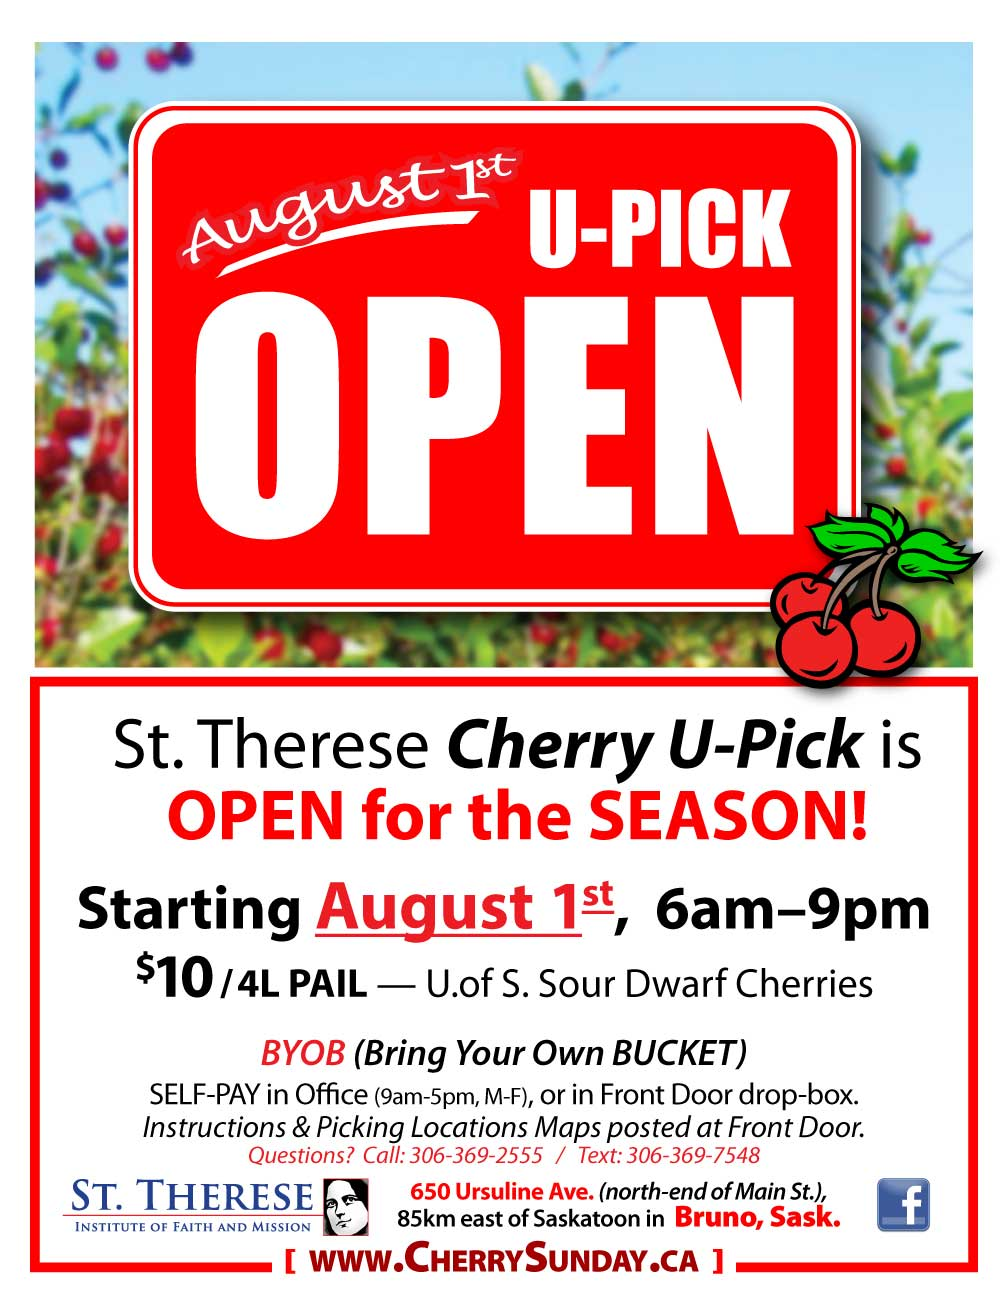 Poster - ORCHARD OPEN 2018 - U-Pick Cherry Orchard